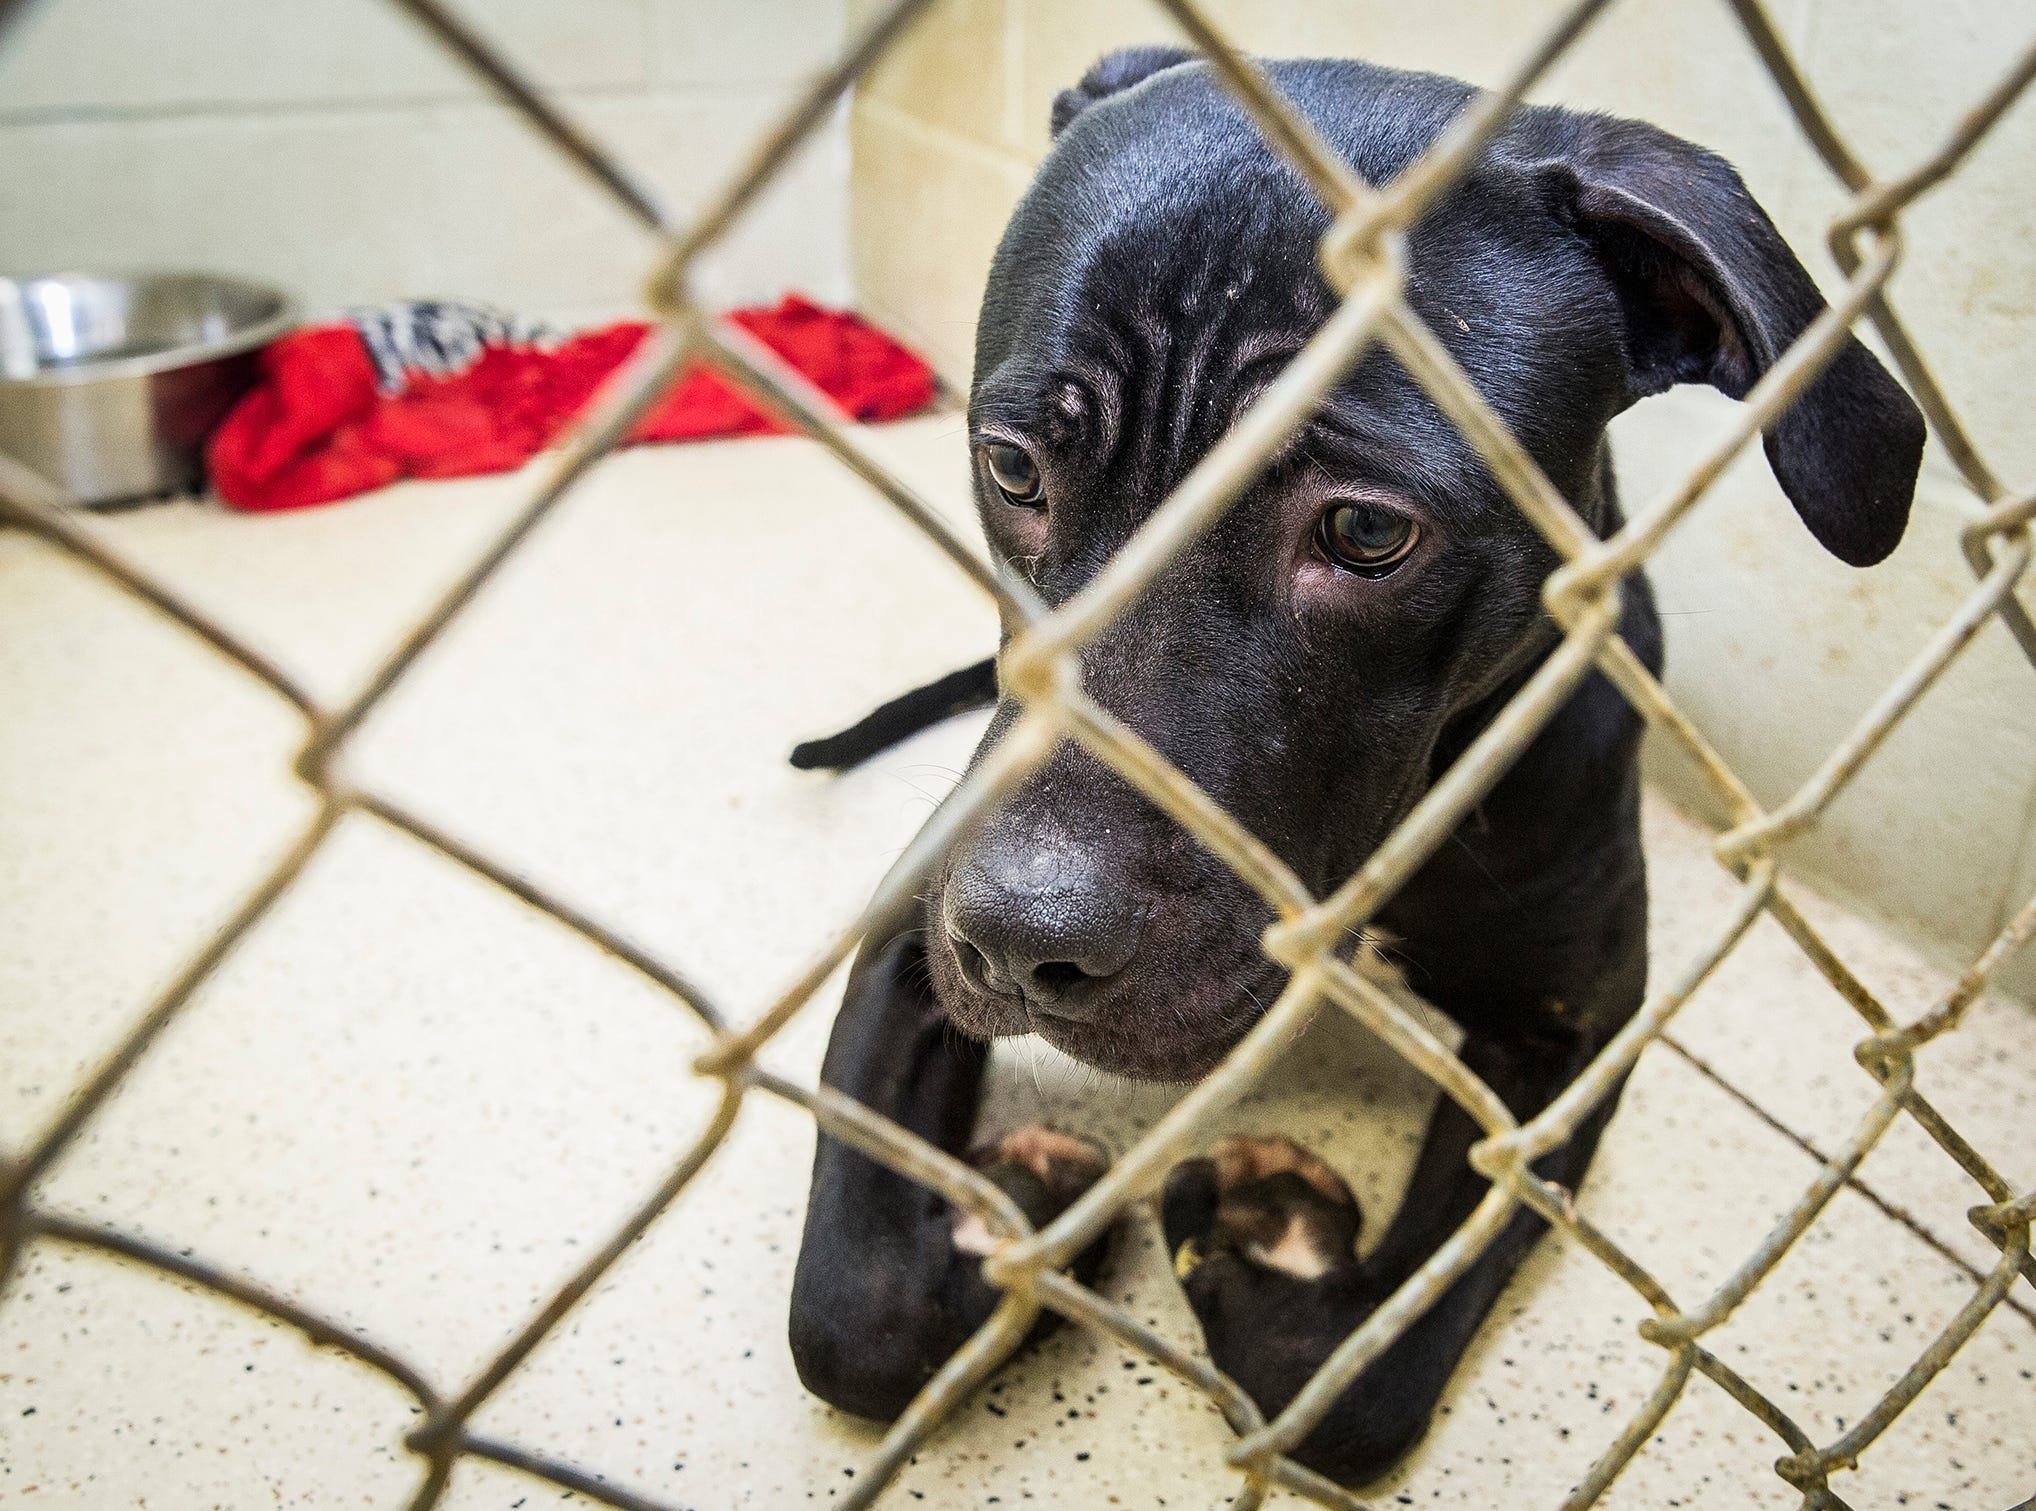 Dozens of dogs and cats are available for adoption at Muncie Animal Care and Services on Riggin Road. According to shelter staff, the facility is at capacity for dogs.